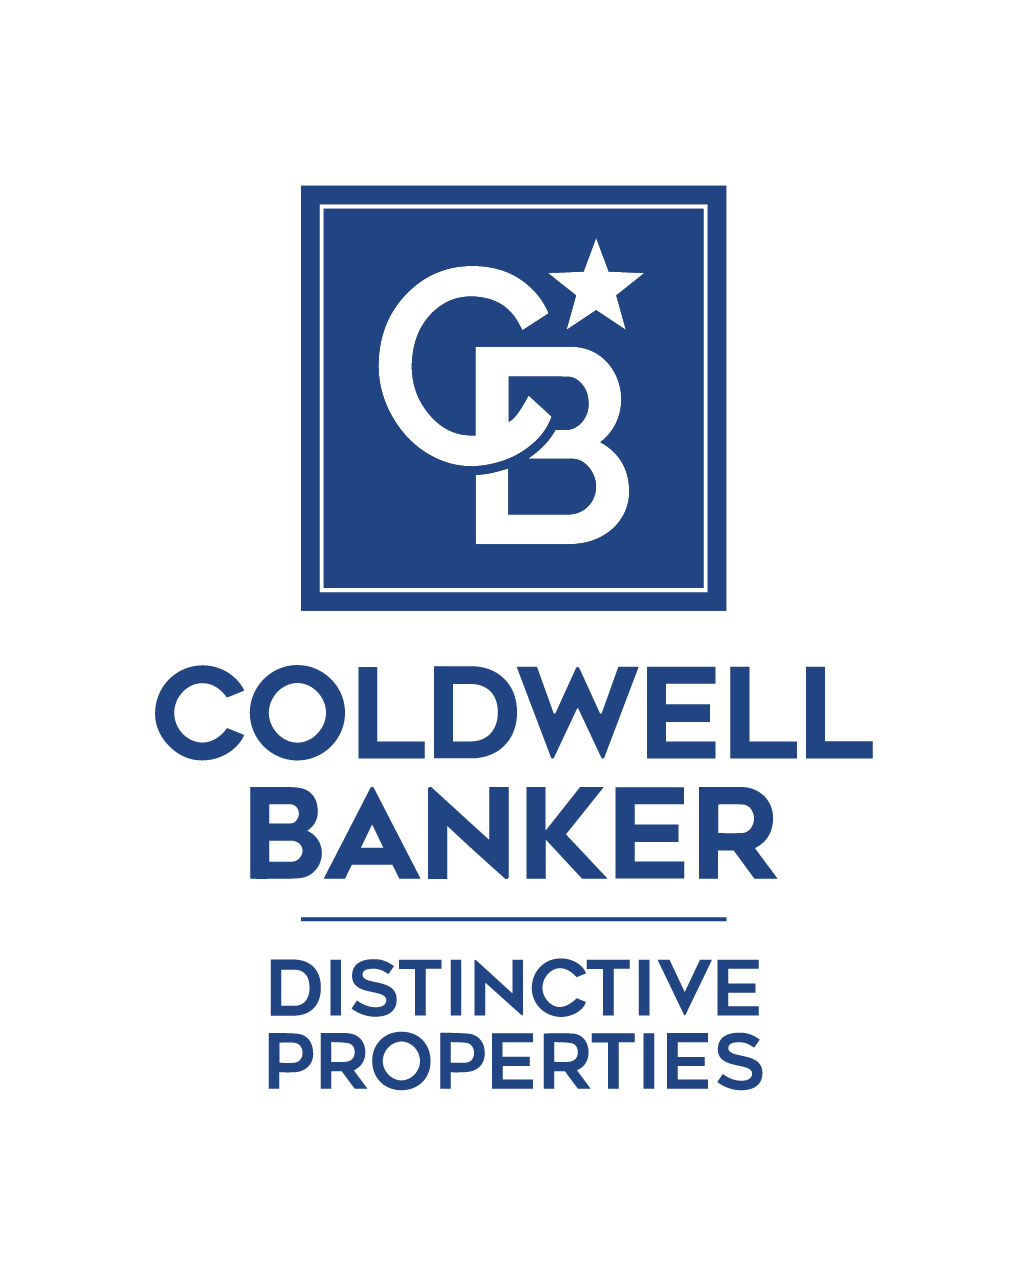 John Huff - Coldwell Banker Distinctive Properties